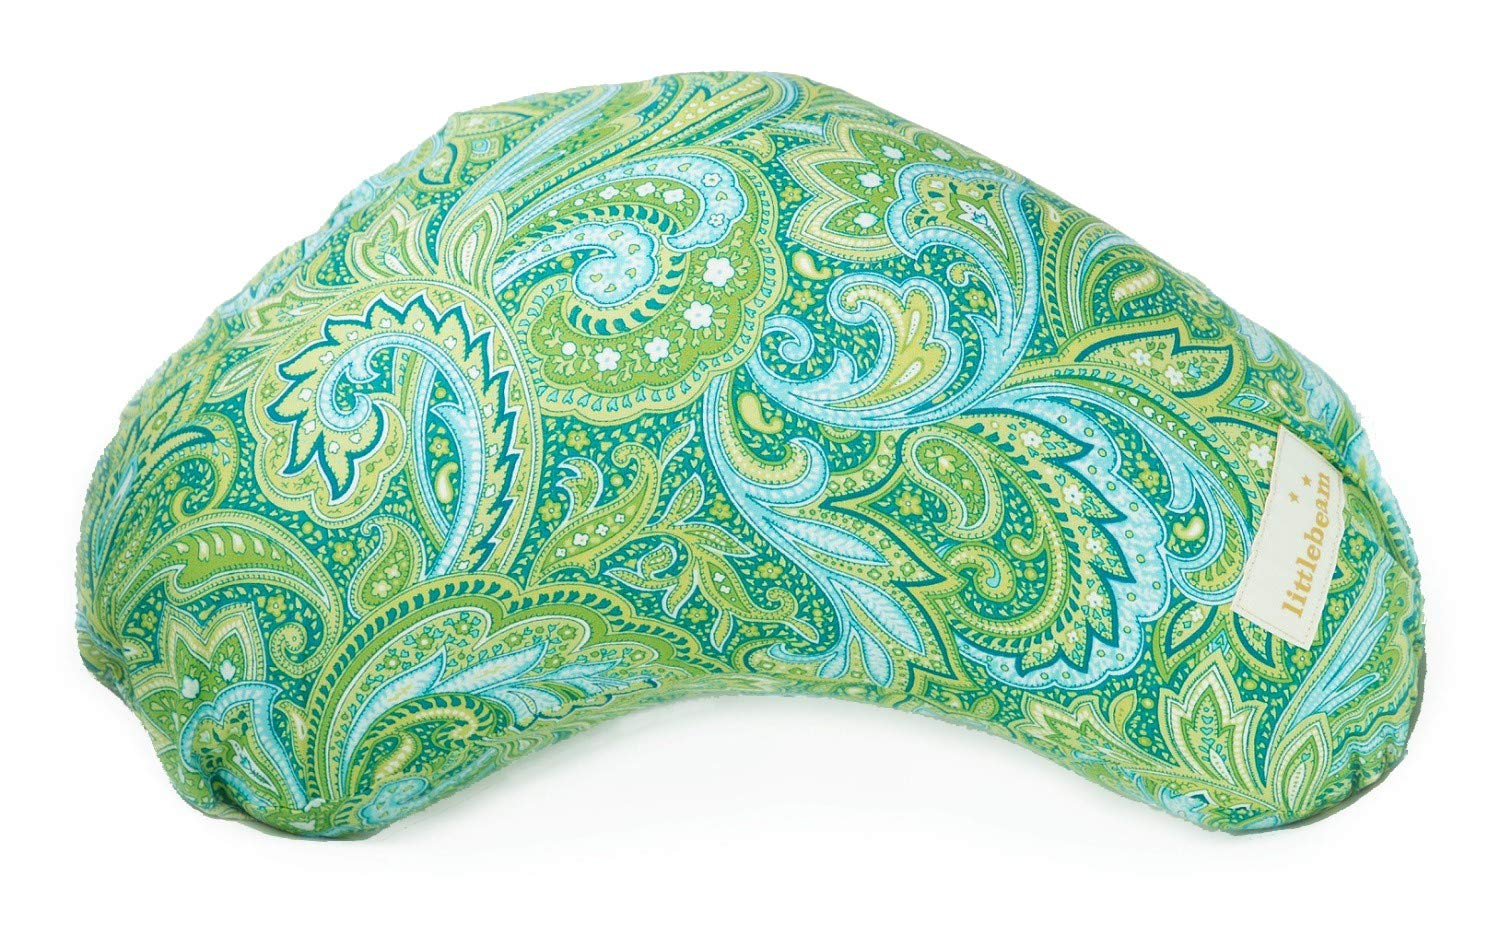 littlebeam Portable and Versatile Baby Bottle and Breastfeeding Nursing Support Pillow with Memory Foam ~ Green Paisley